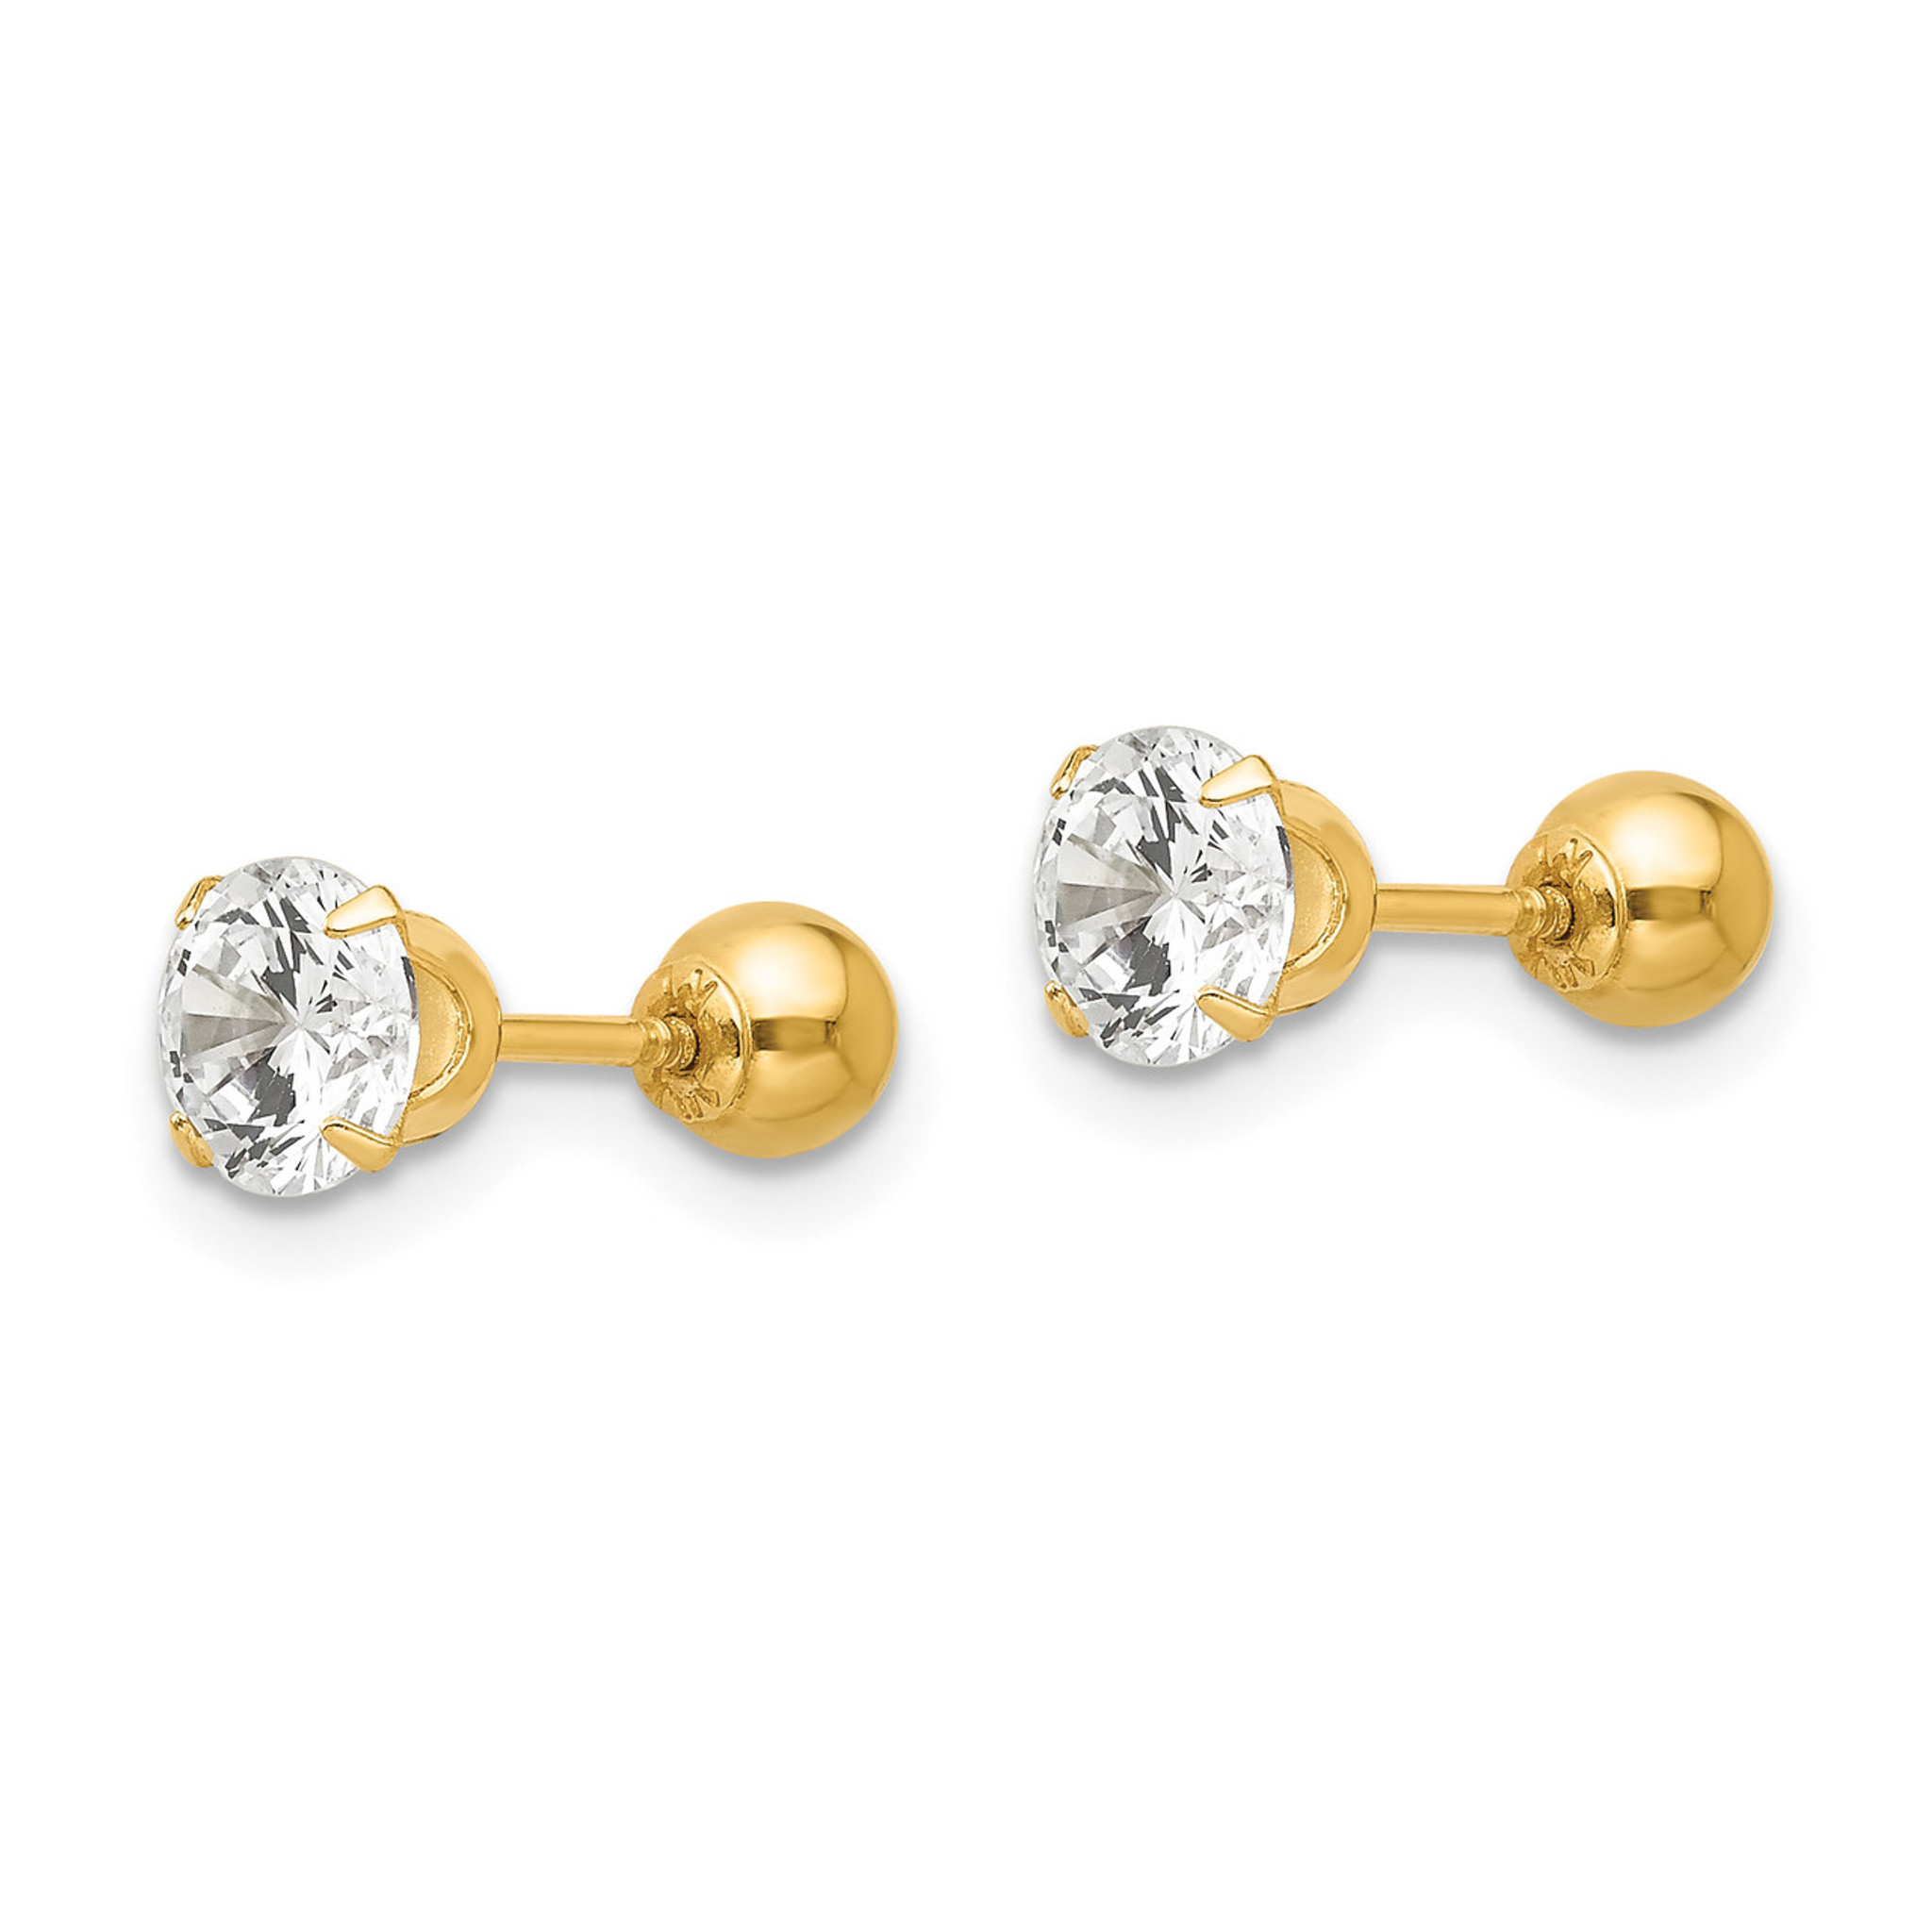 14K Yellow Gold Madi K Childrens 4 MM Reversible Ball and CZ Screw Back Stud Earrings